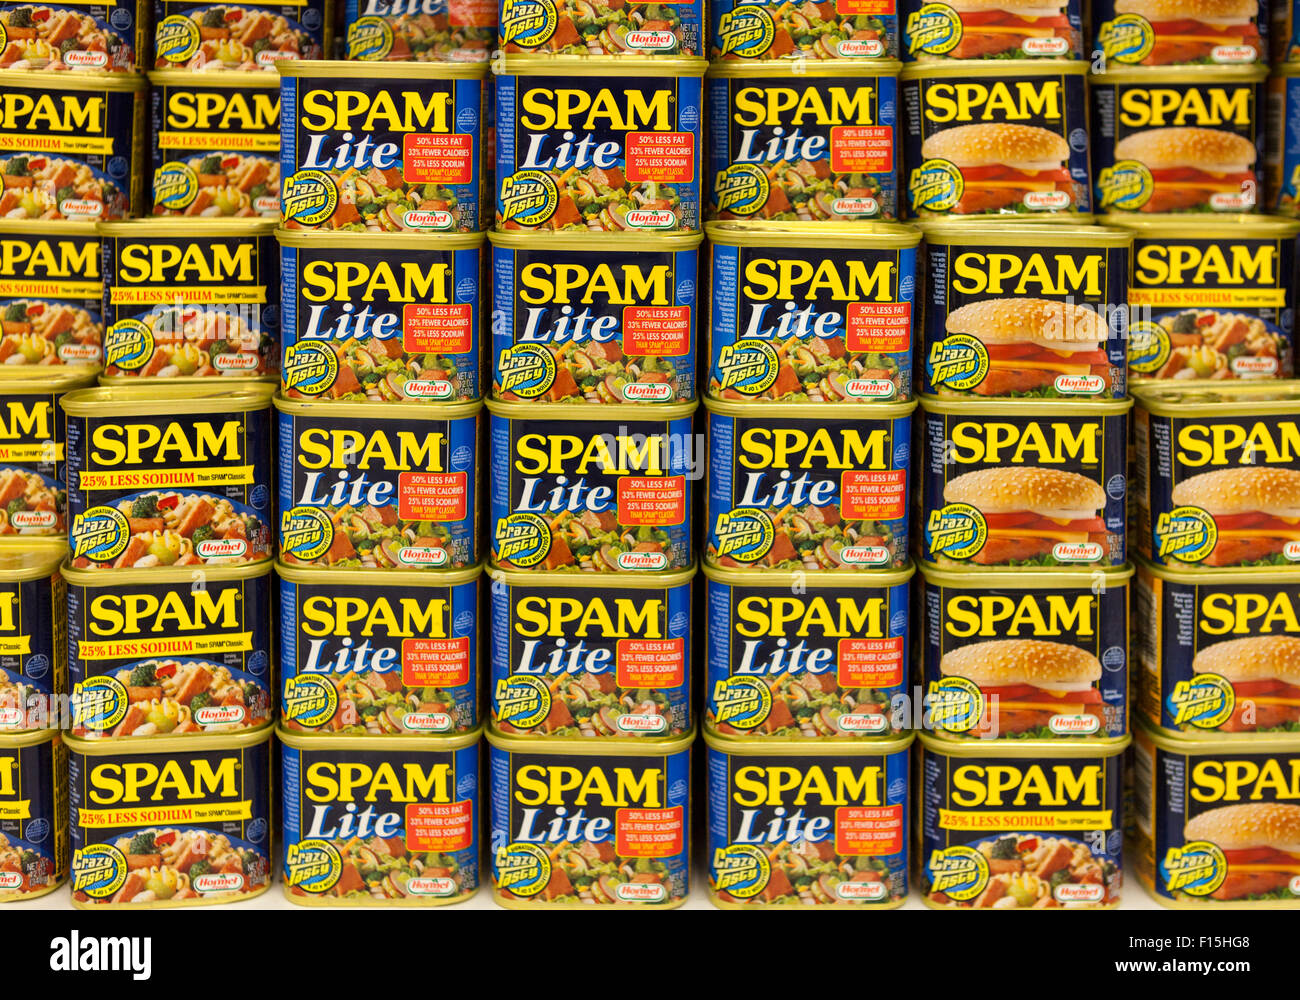 Cans of various varieties of Spam stacked for sale in a supermarket in Waimea, Big Island, Hawaii - Stock Image